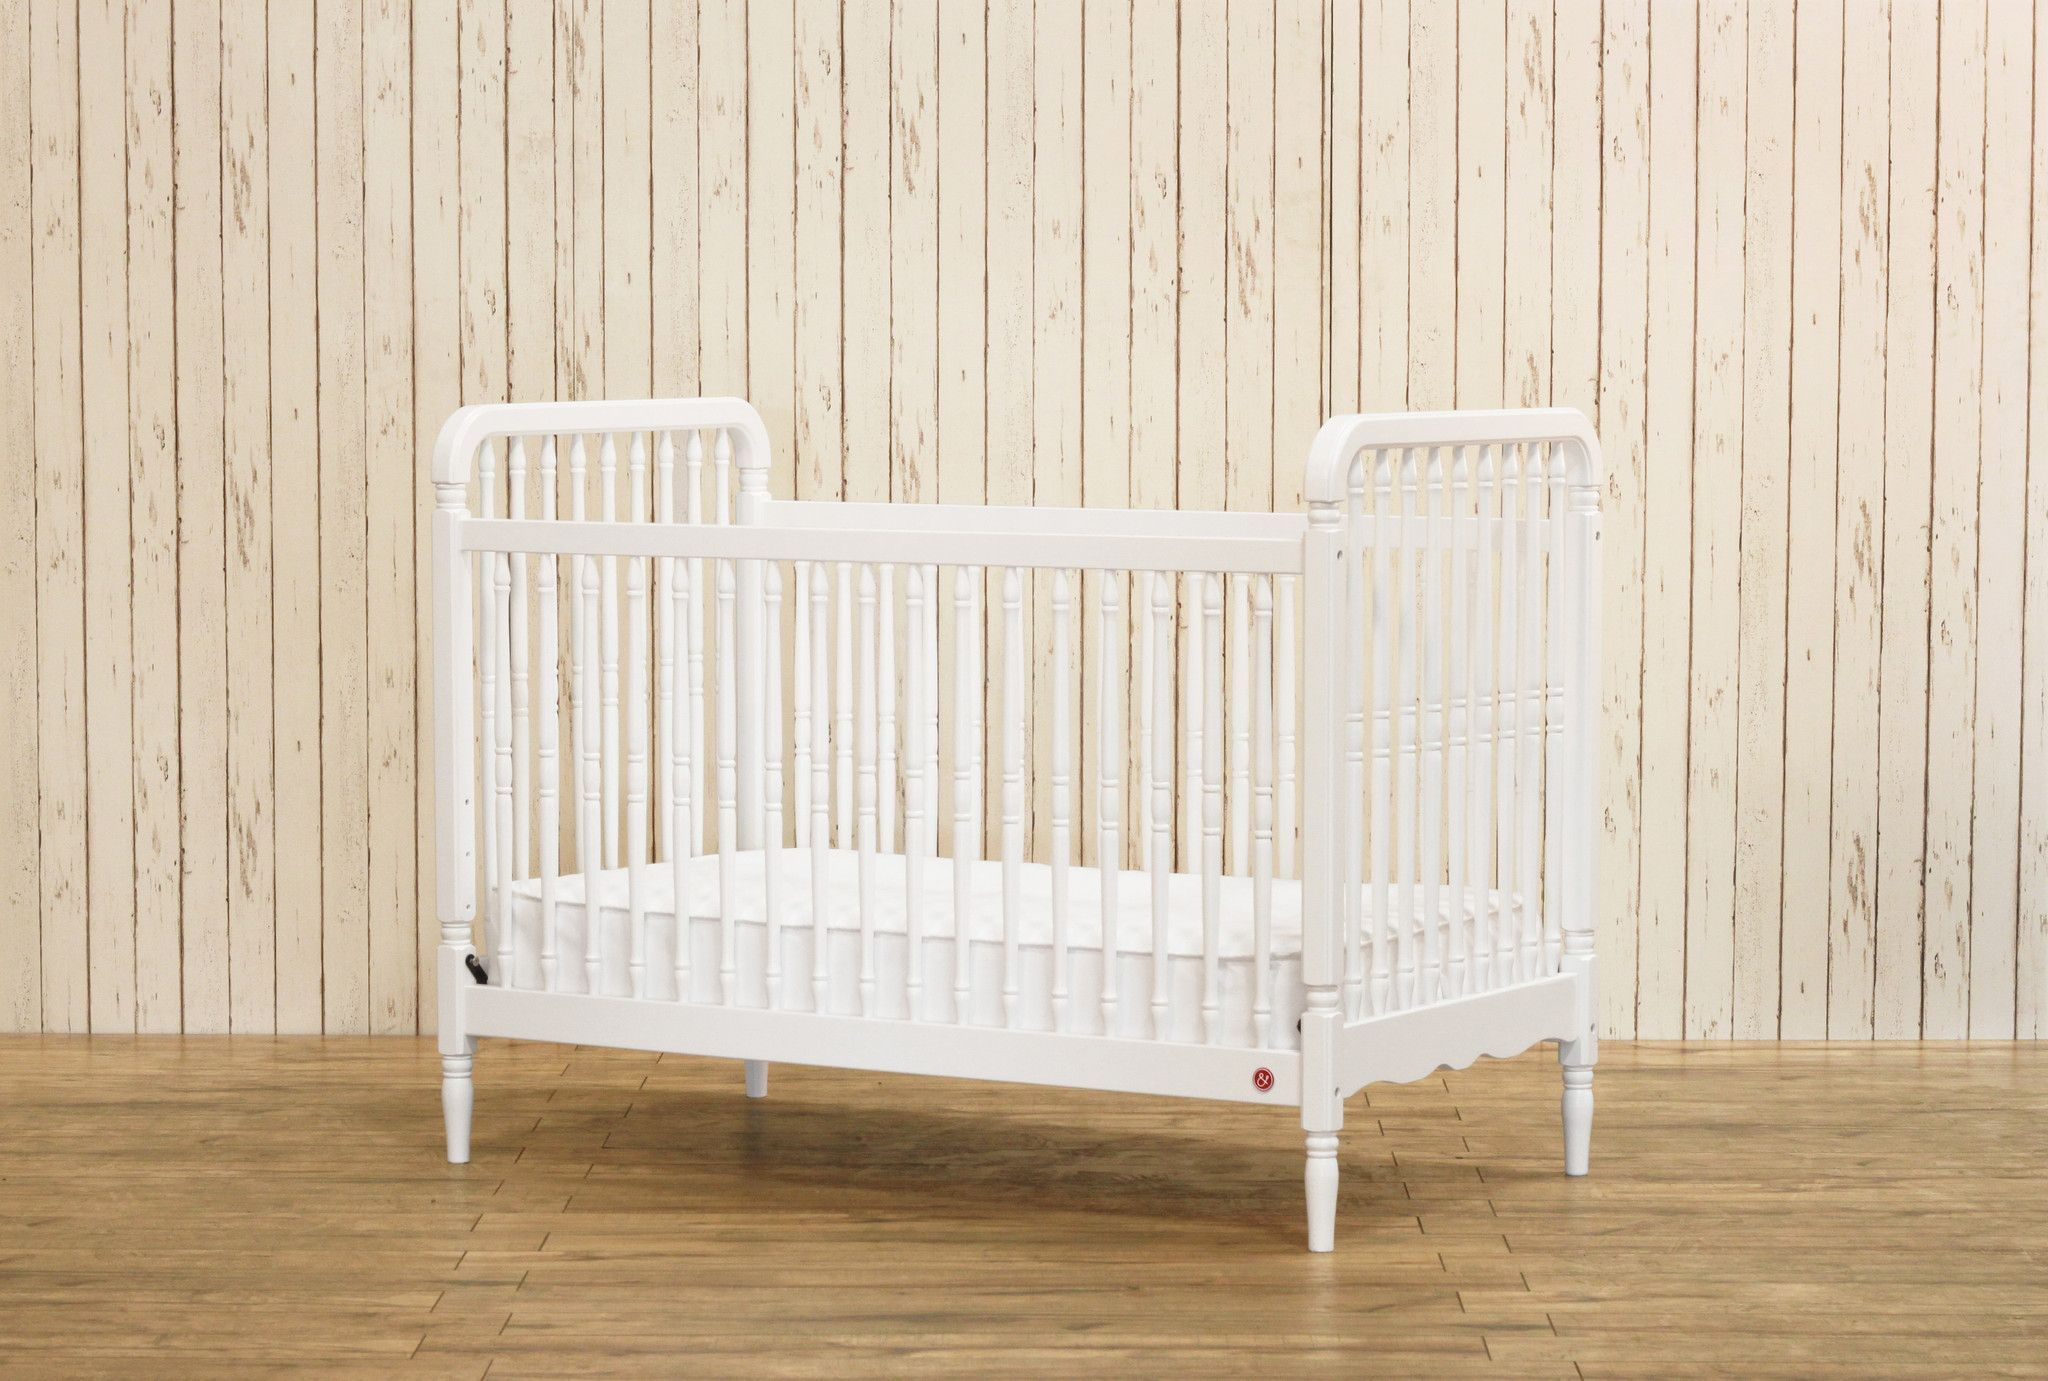 Liberty's fresh take on the antique spindle crib brings